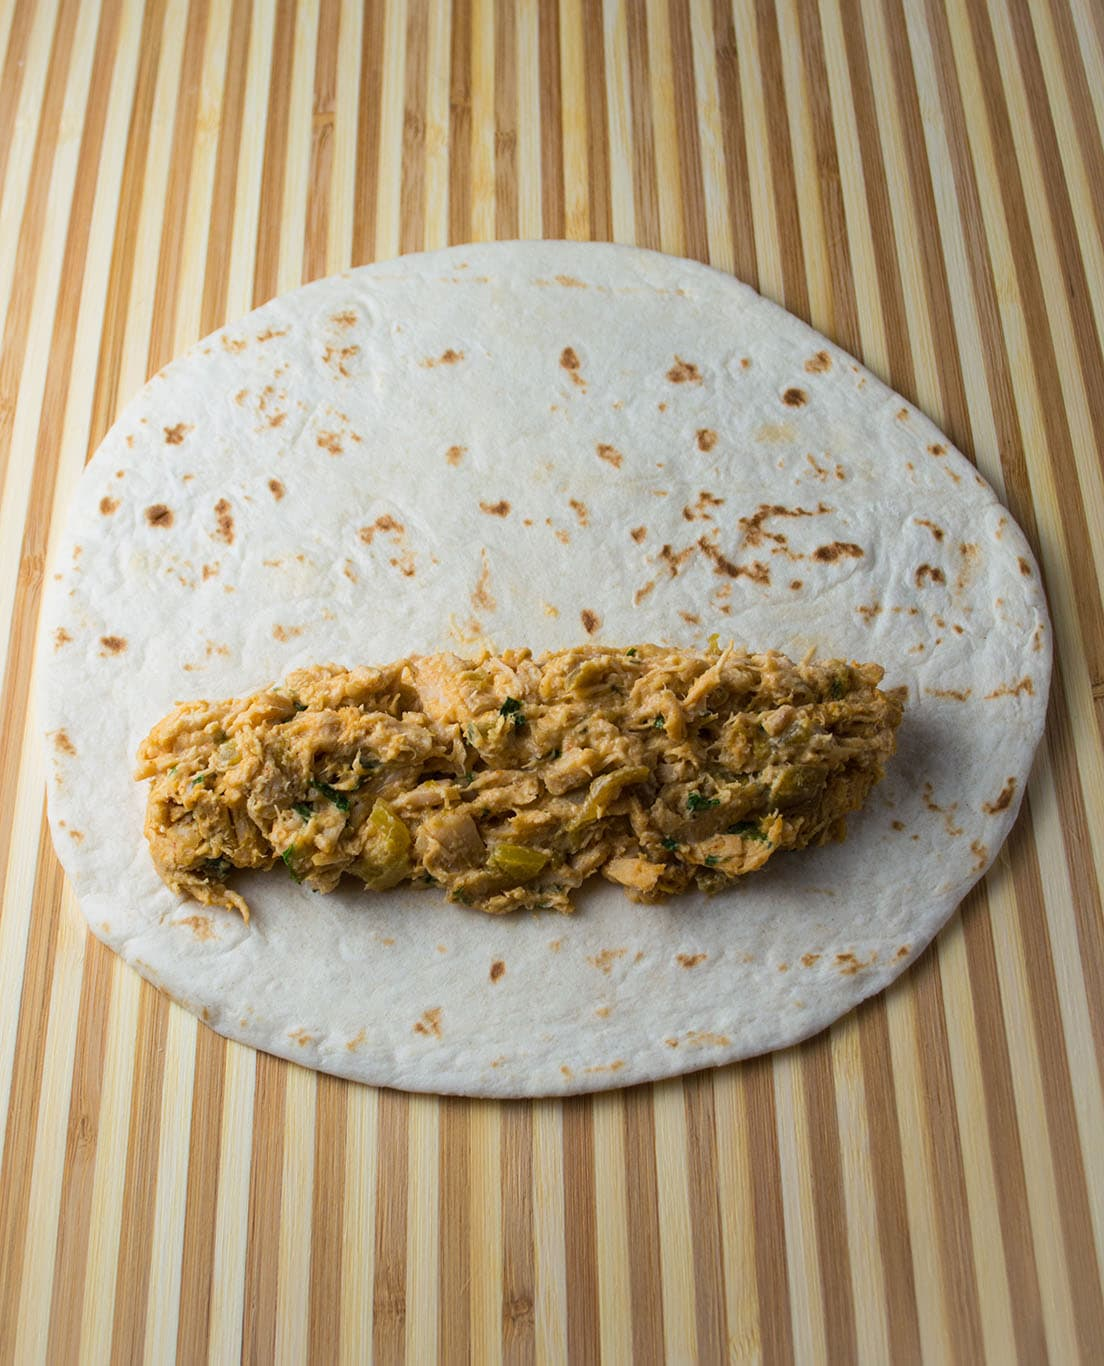 Creamy green chicken chile filling is rolled into flour tortillas for baked taquitos.